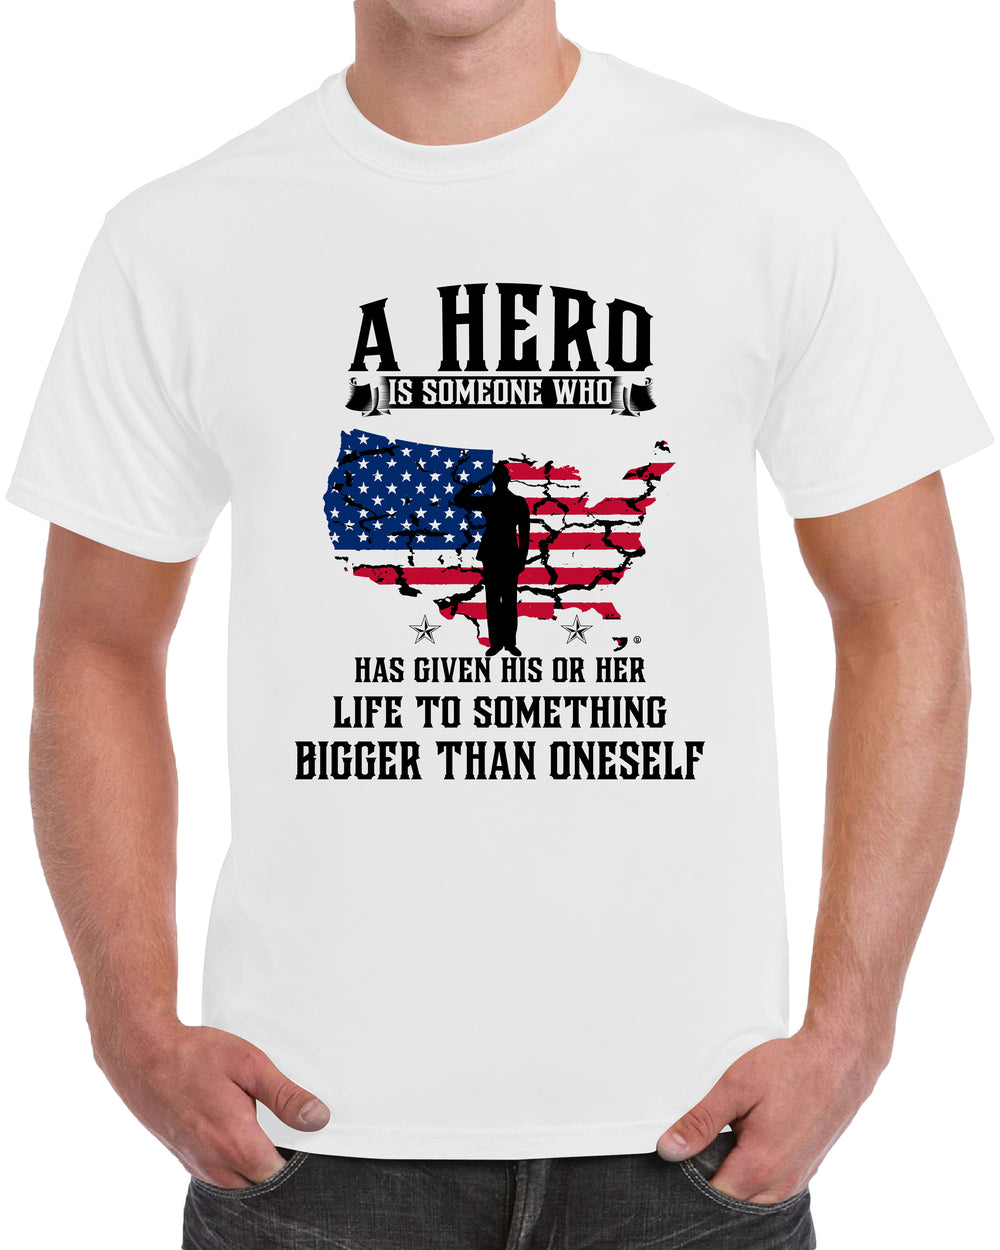 A Hero Is Someone Who Has Given His Or Her Life To Something Bigger Than Oneself - WHITE